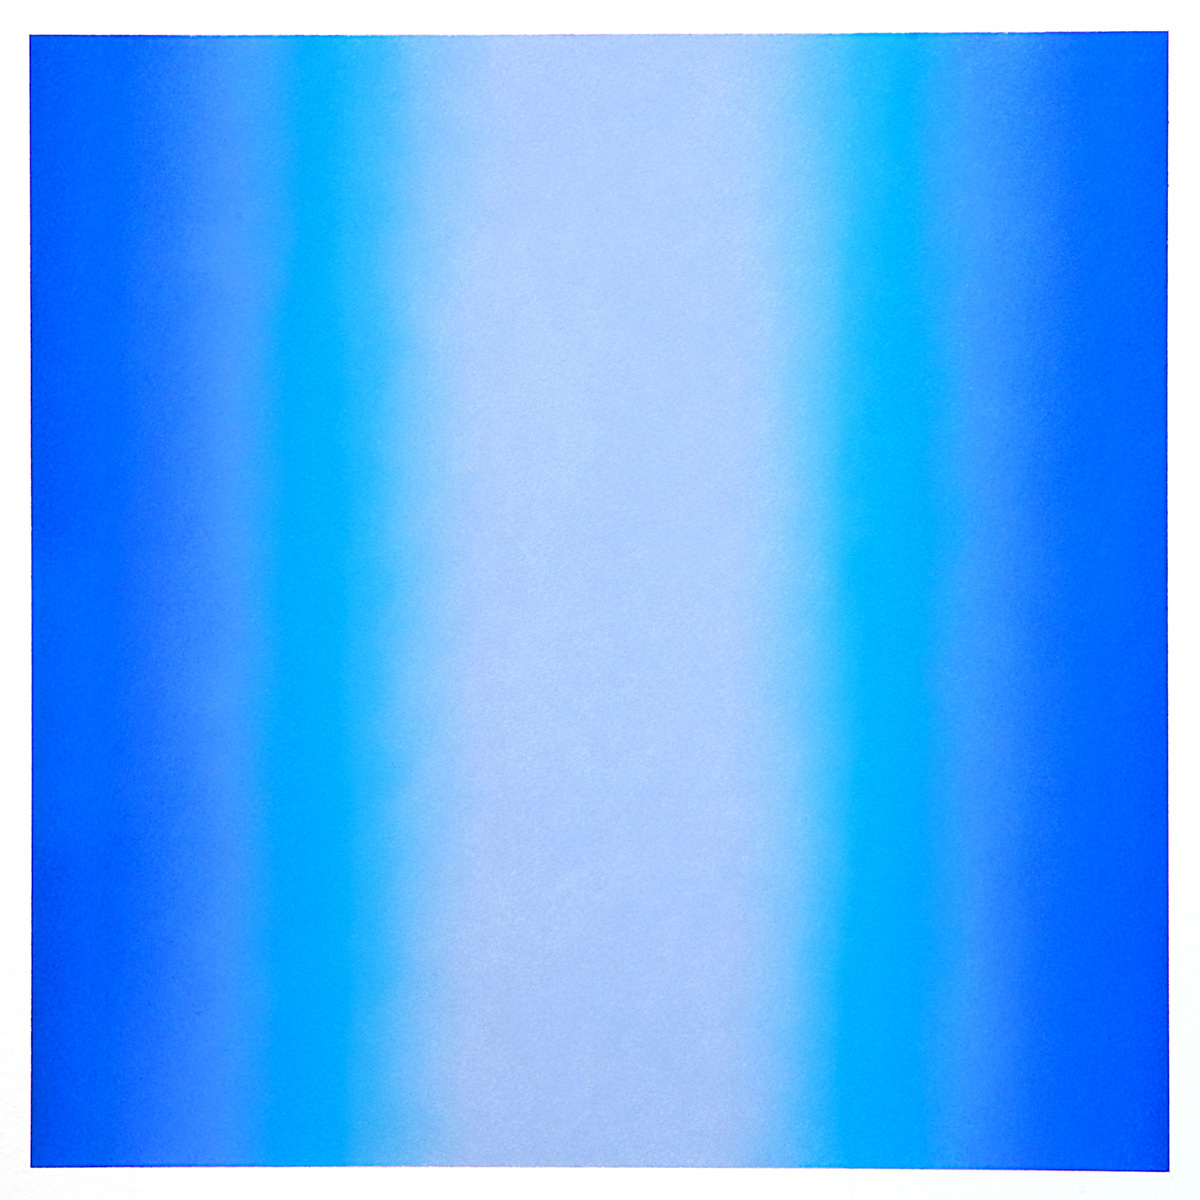 Counterpoint #32, 2012, pastel on paper, image 14 x 14 in. (36 x 36 cm.), sheet 30 x 22 in. (76 x 56 cm.)